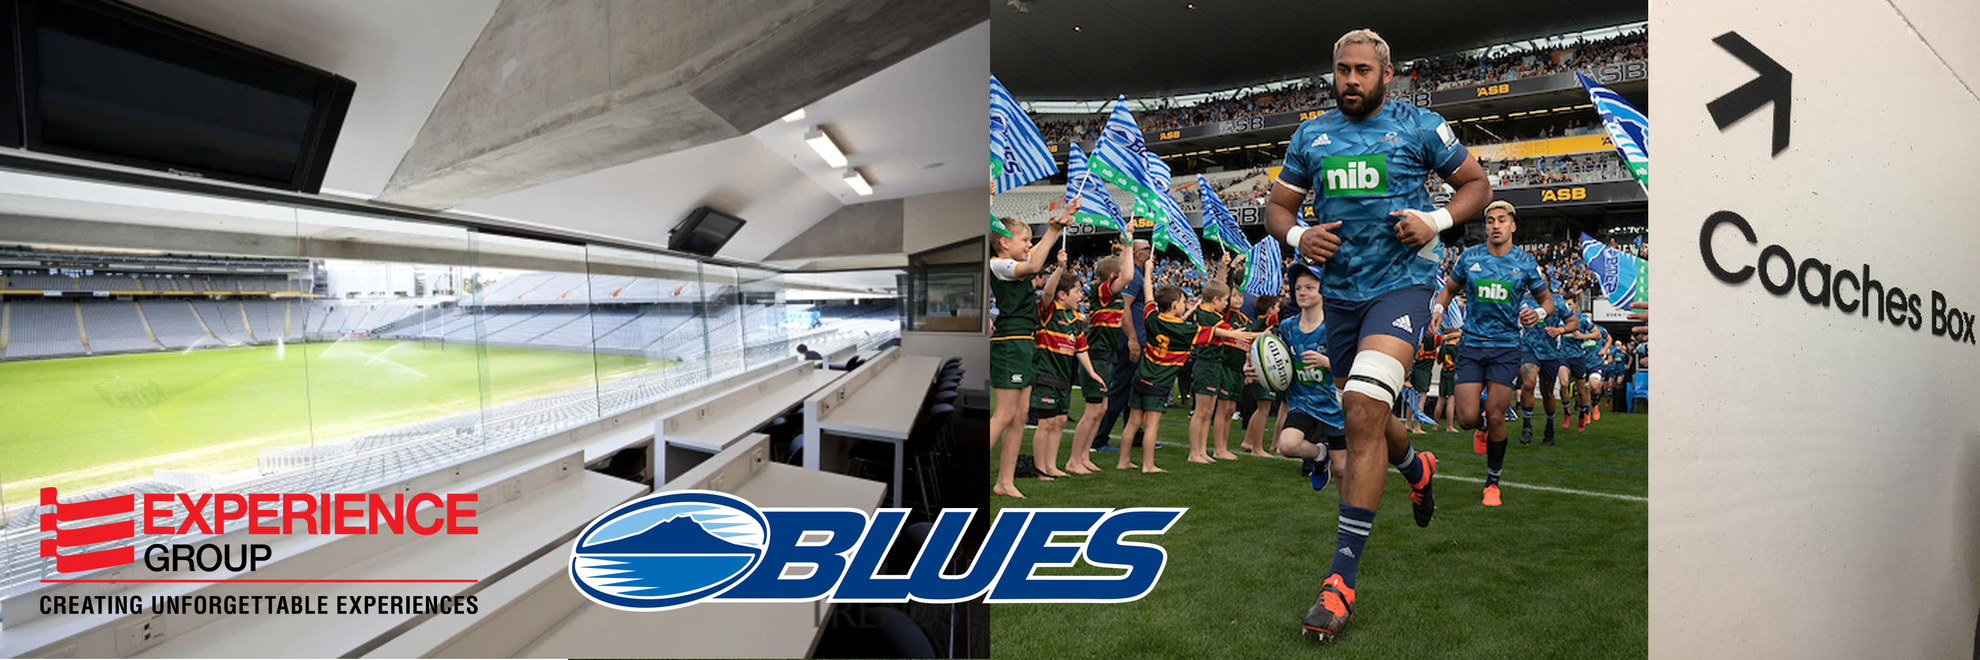 Blues Coaches Box - Experience Group